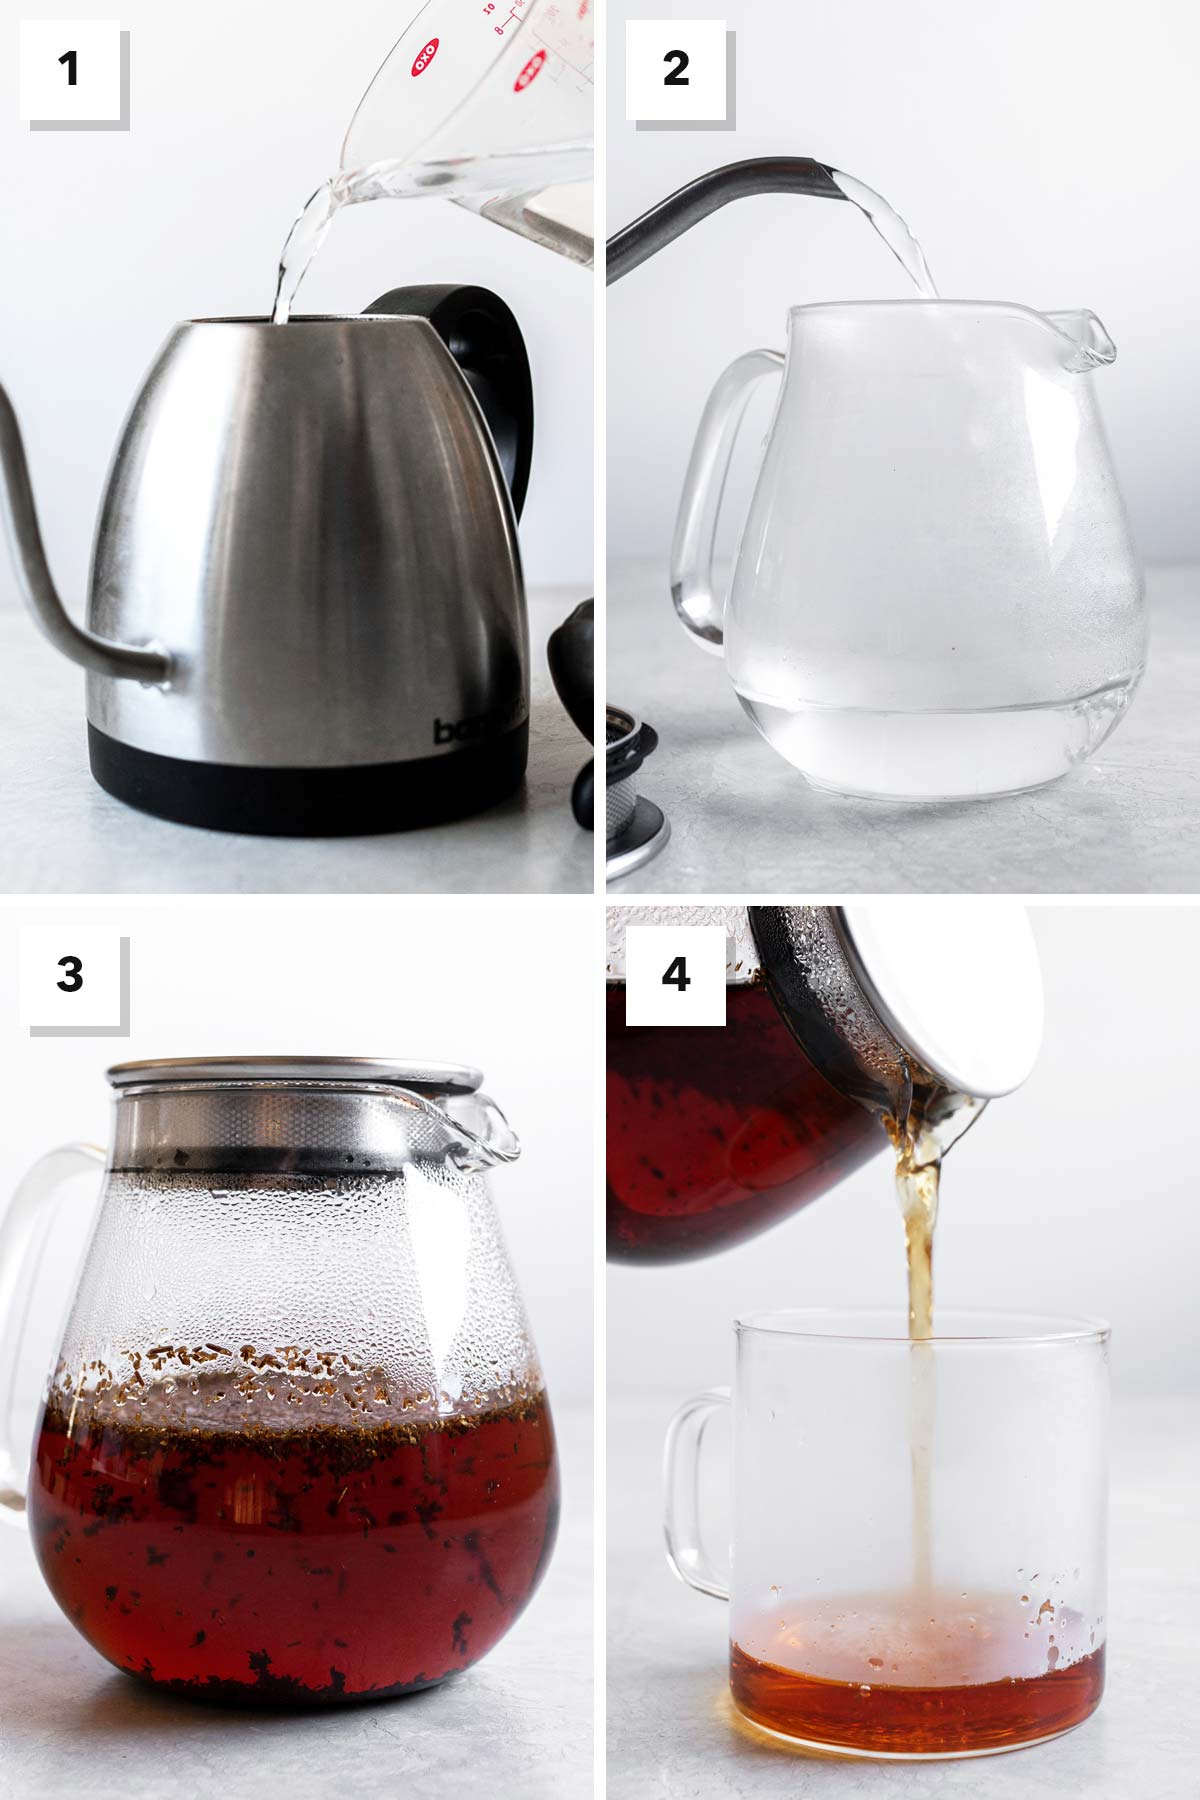 Four images showing steps to make rooibos tea.